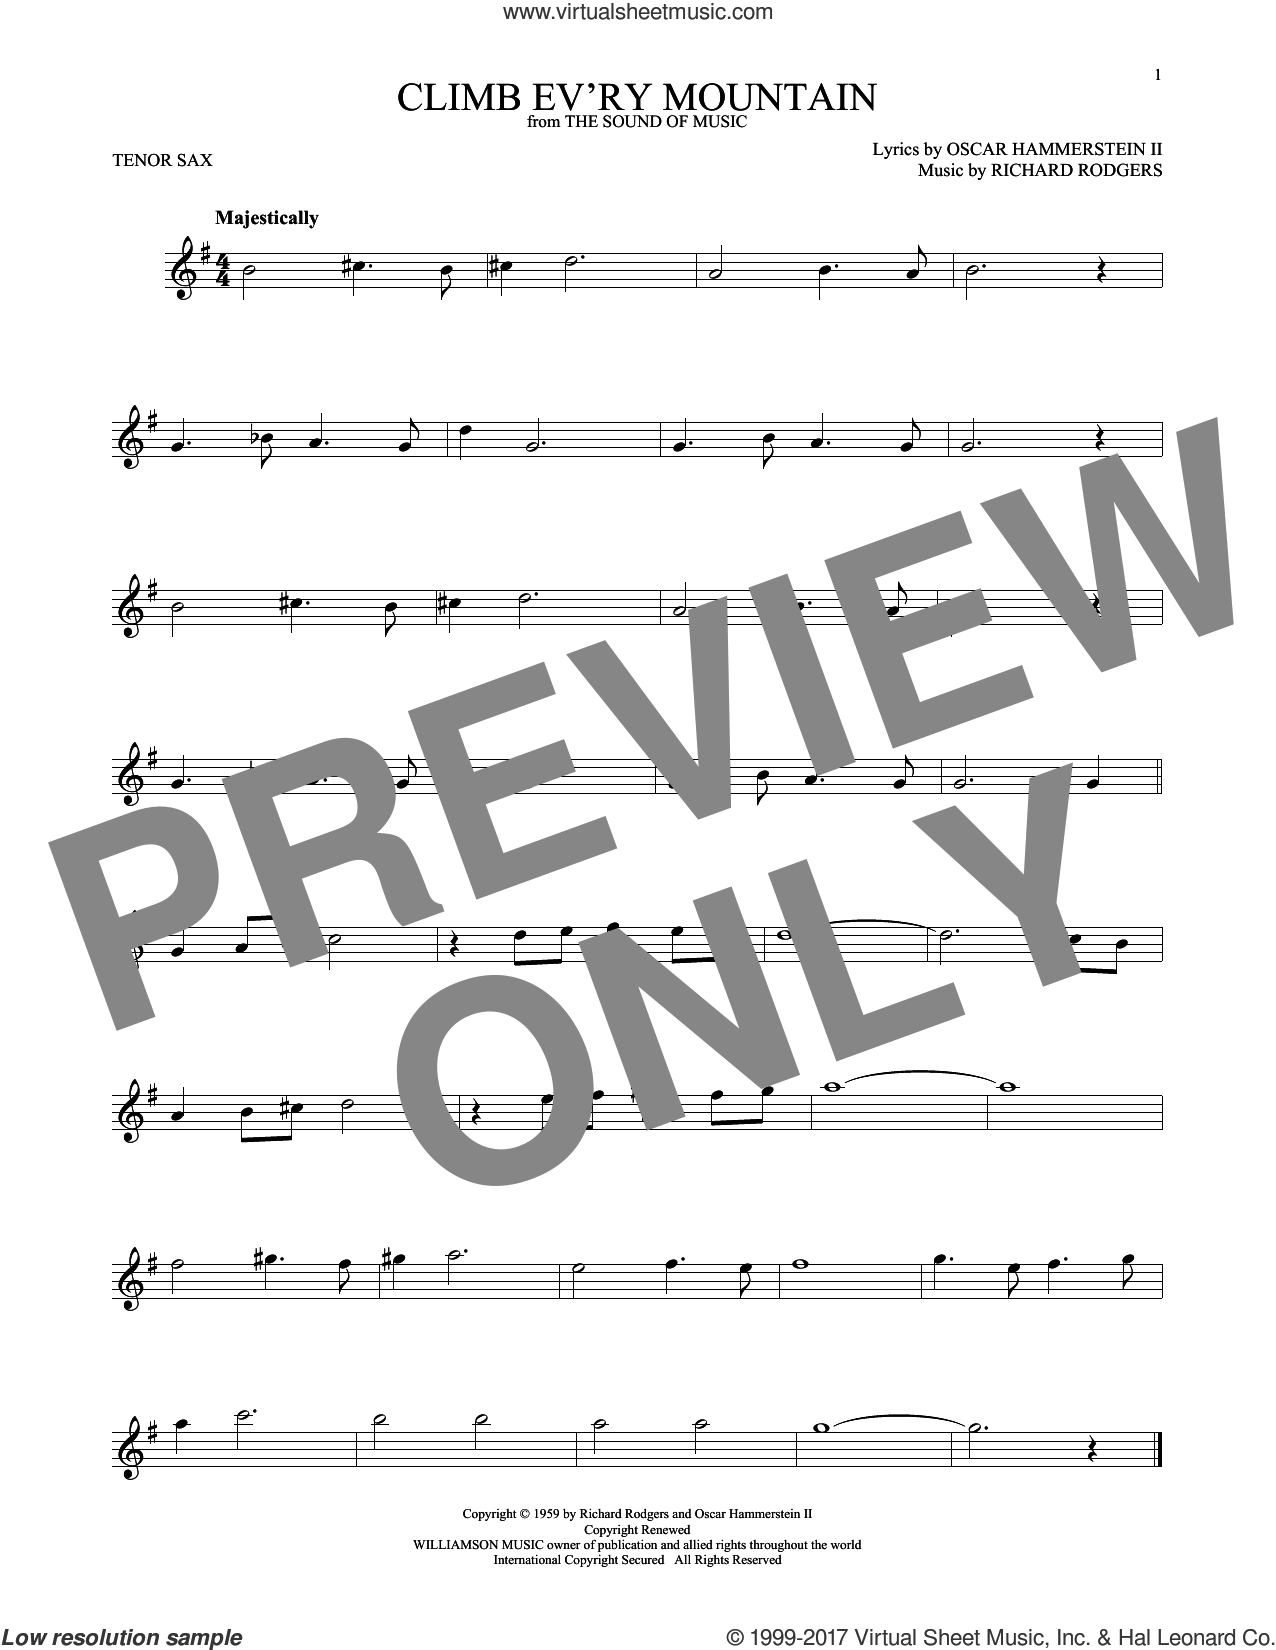 Climb Ev'ry Mountain sheet music for tenor saxophone solo by Rodgers & Hammerstein, Oscar II Hammerstein and Richard Rodgers, intermediate skill level